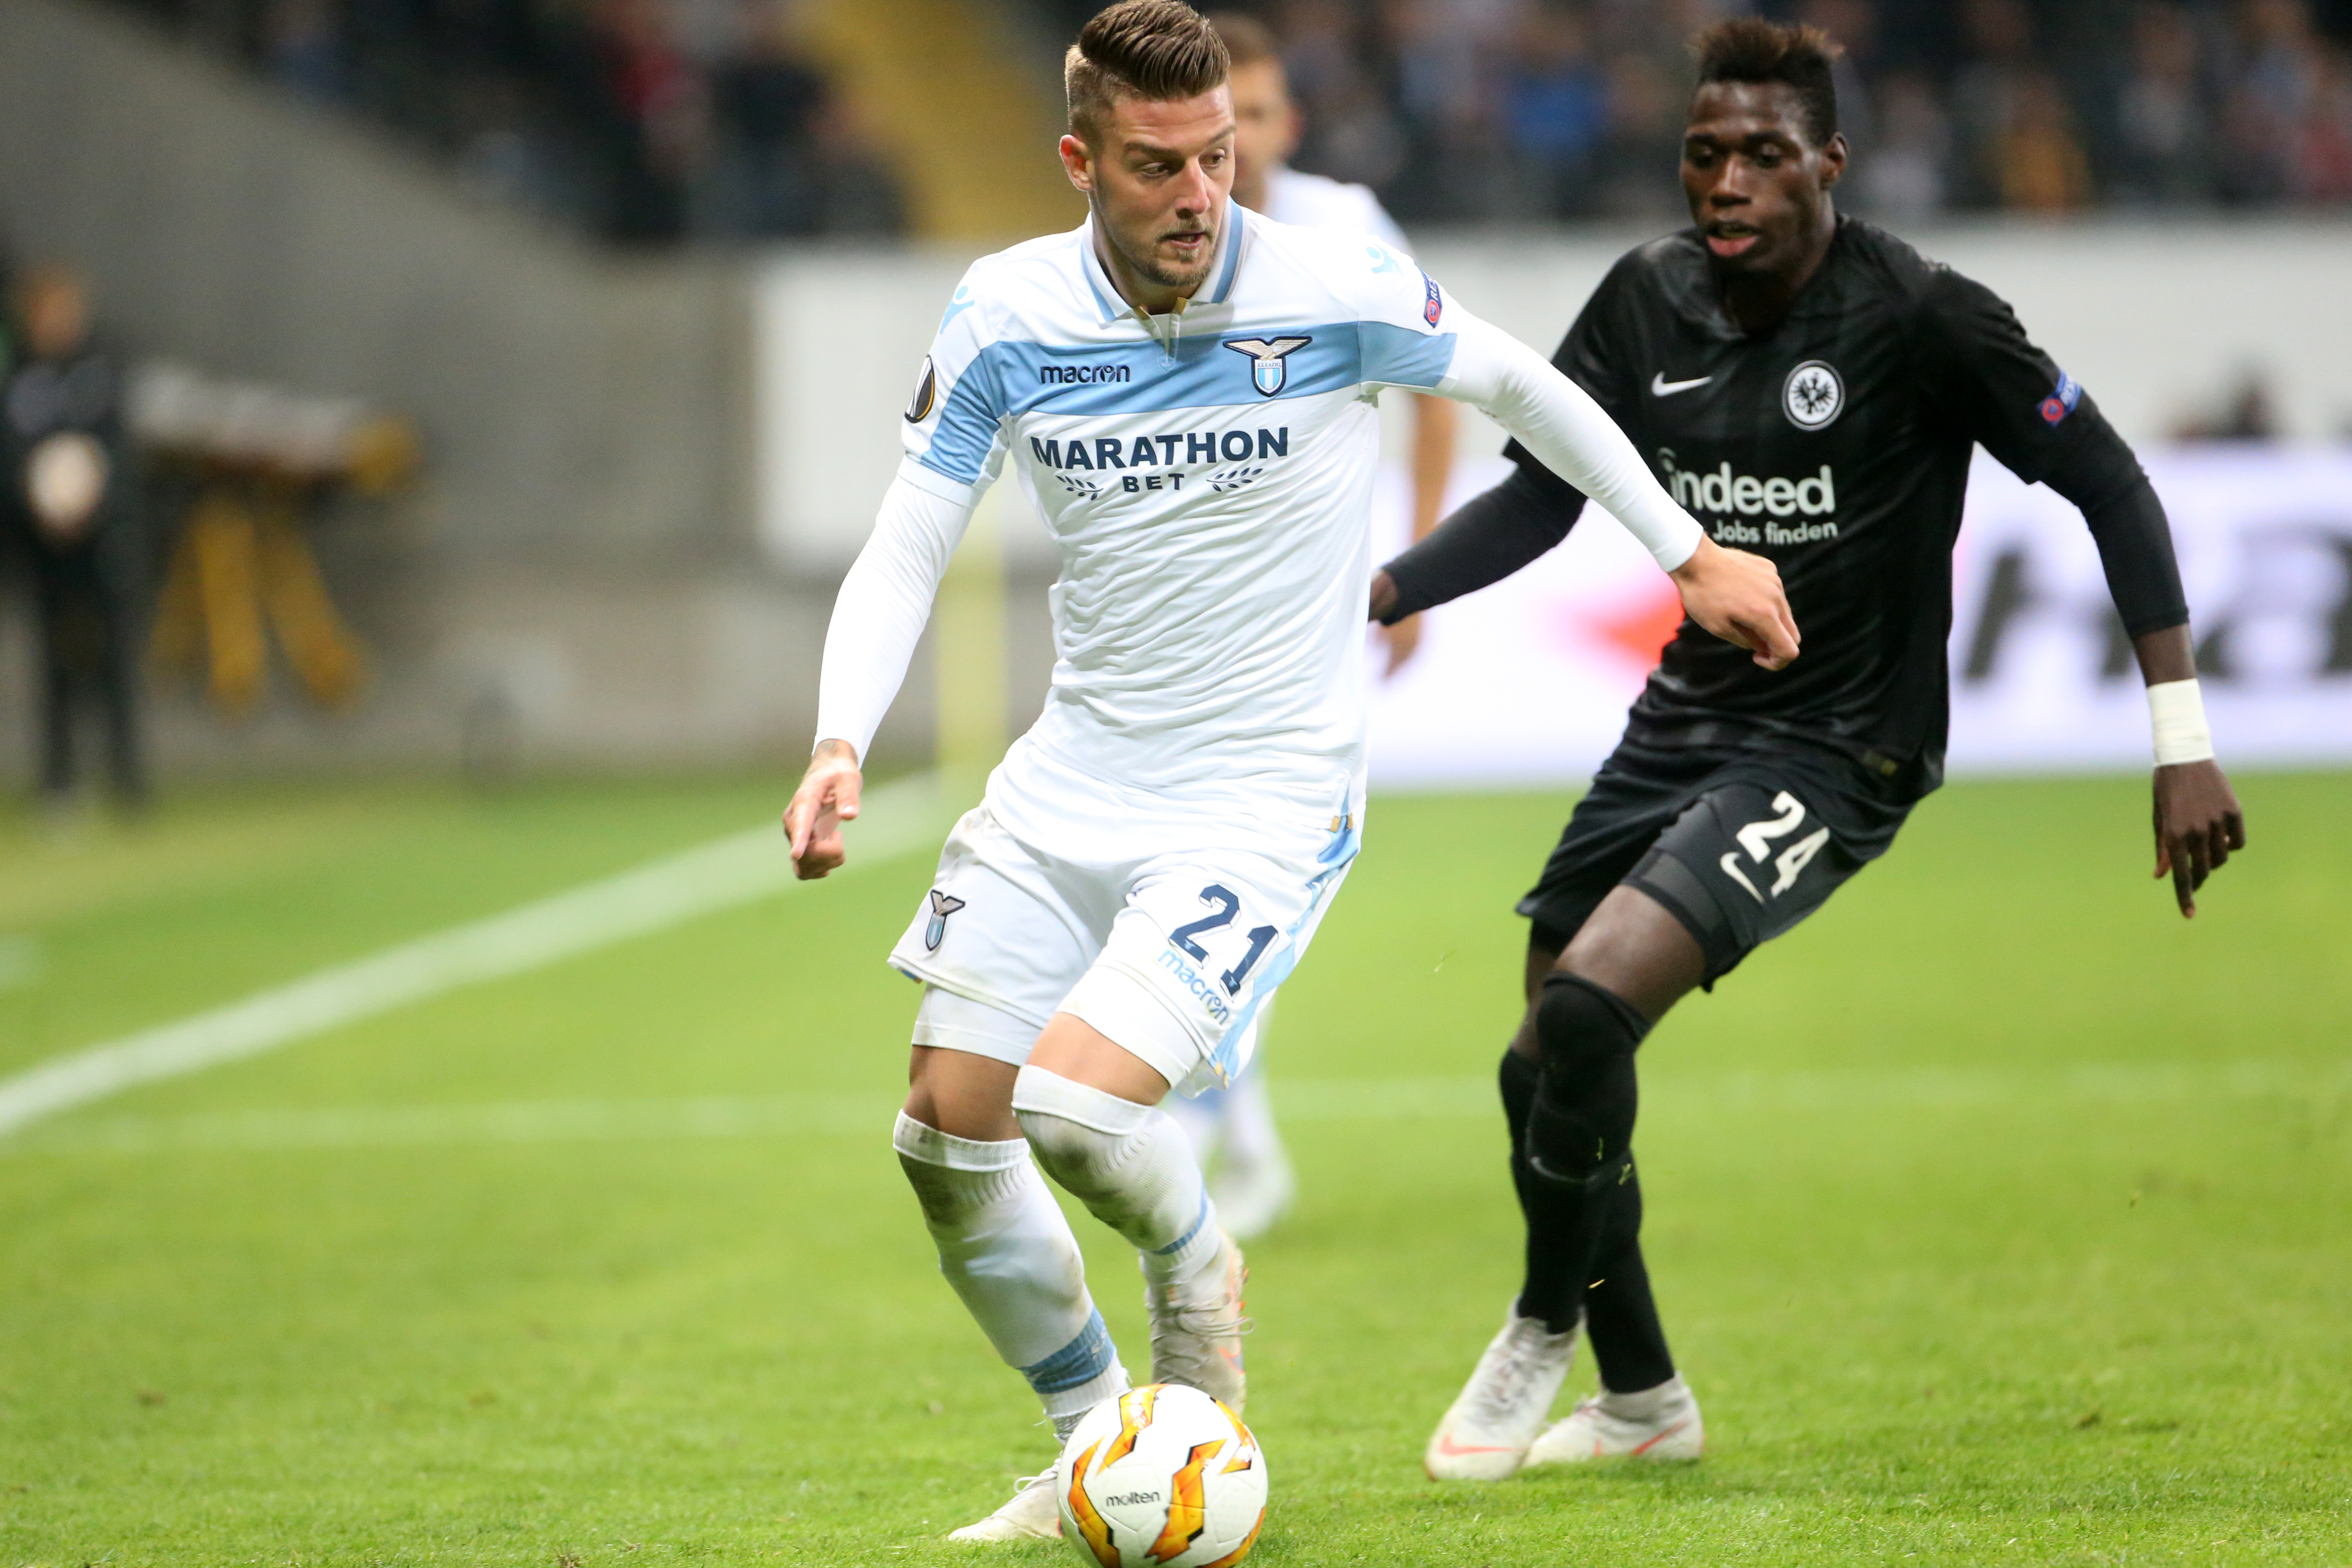 Milinkovic-Savic is in high demand across Europe. Image: PA Images